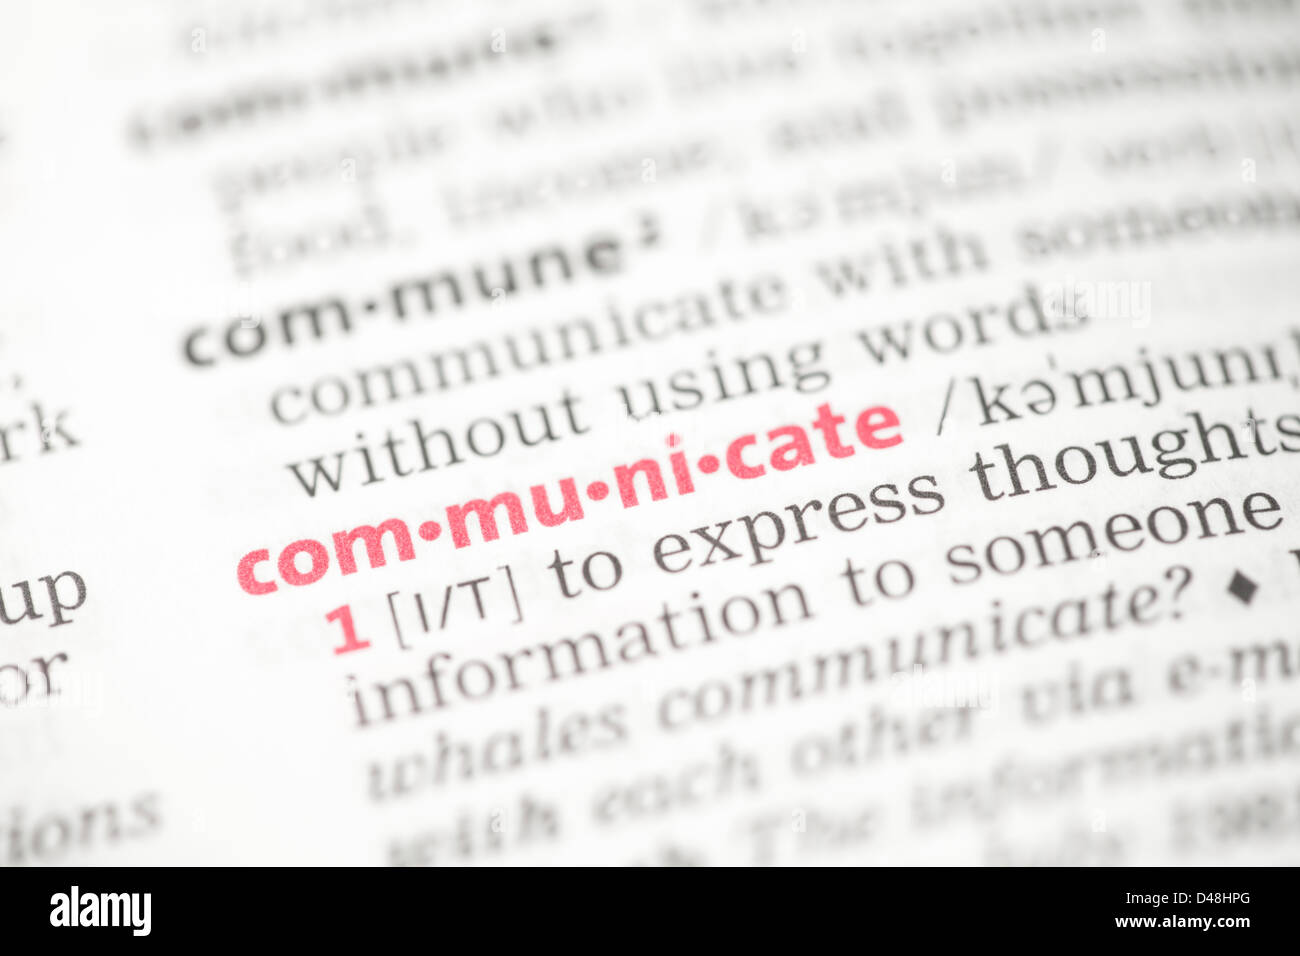 Communicate definition - Stock Image